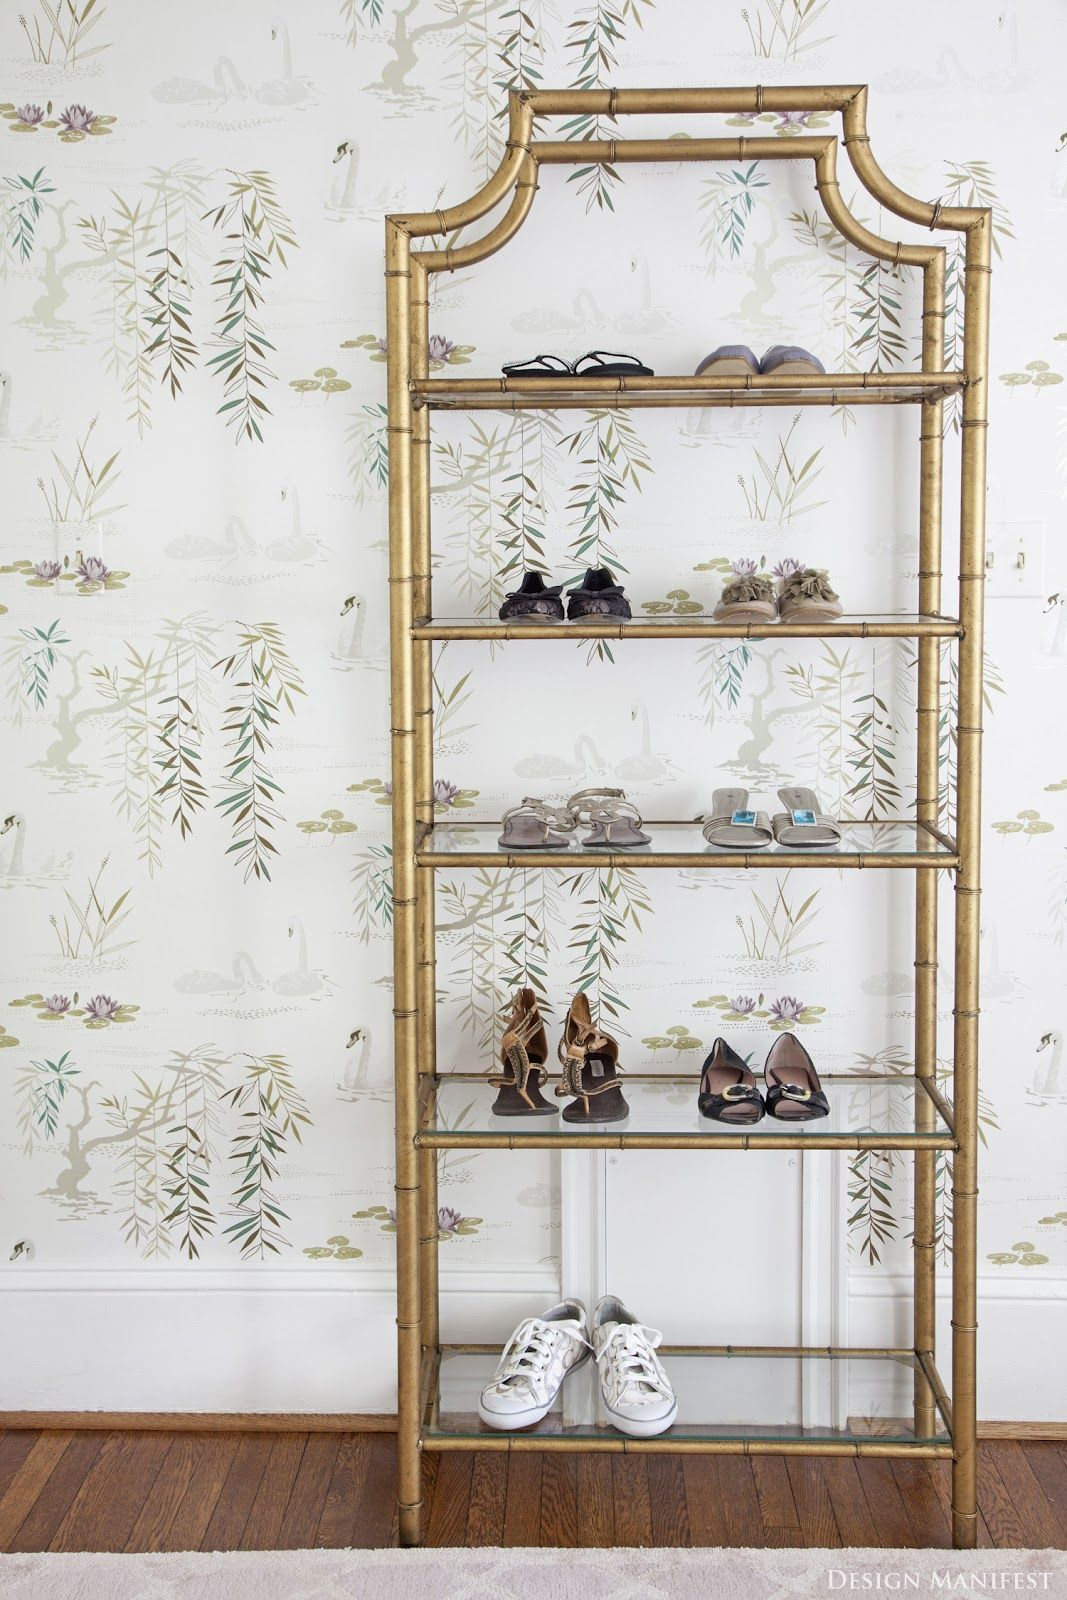 17 Best images about Etagere s on Pinterest   Decorative objects  Glass  shelves and Chinoiserie. 17 Best images about Etagere s on Pinterest   Decorative objects